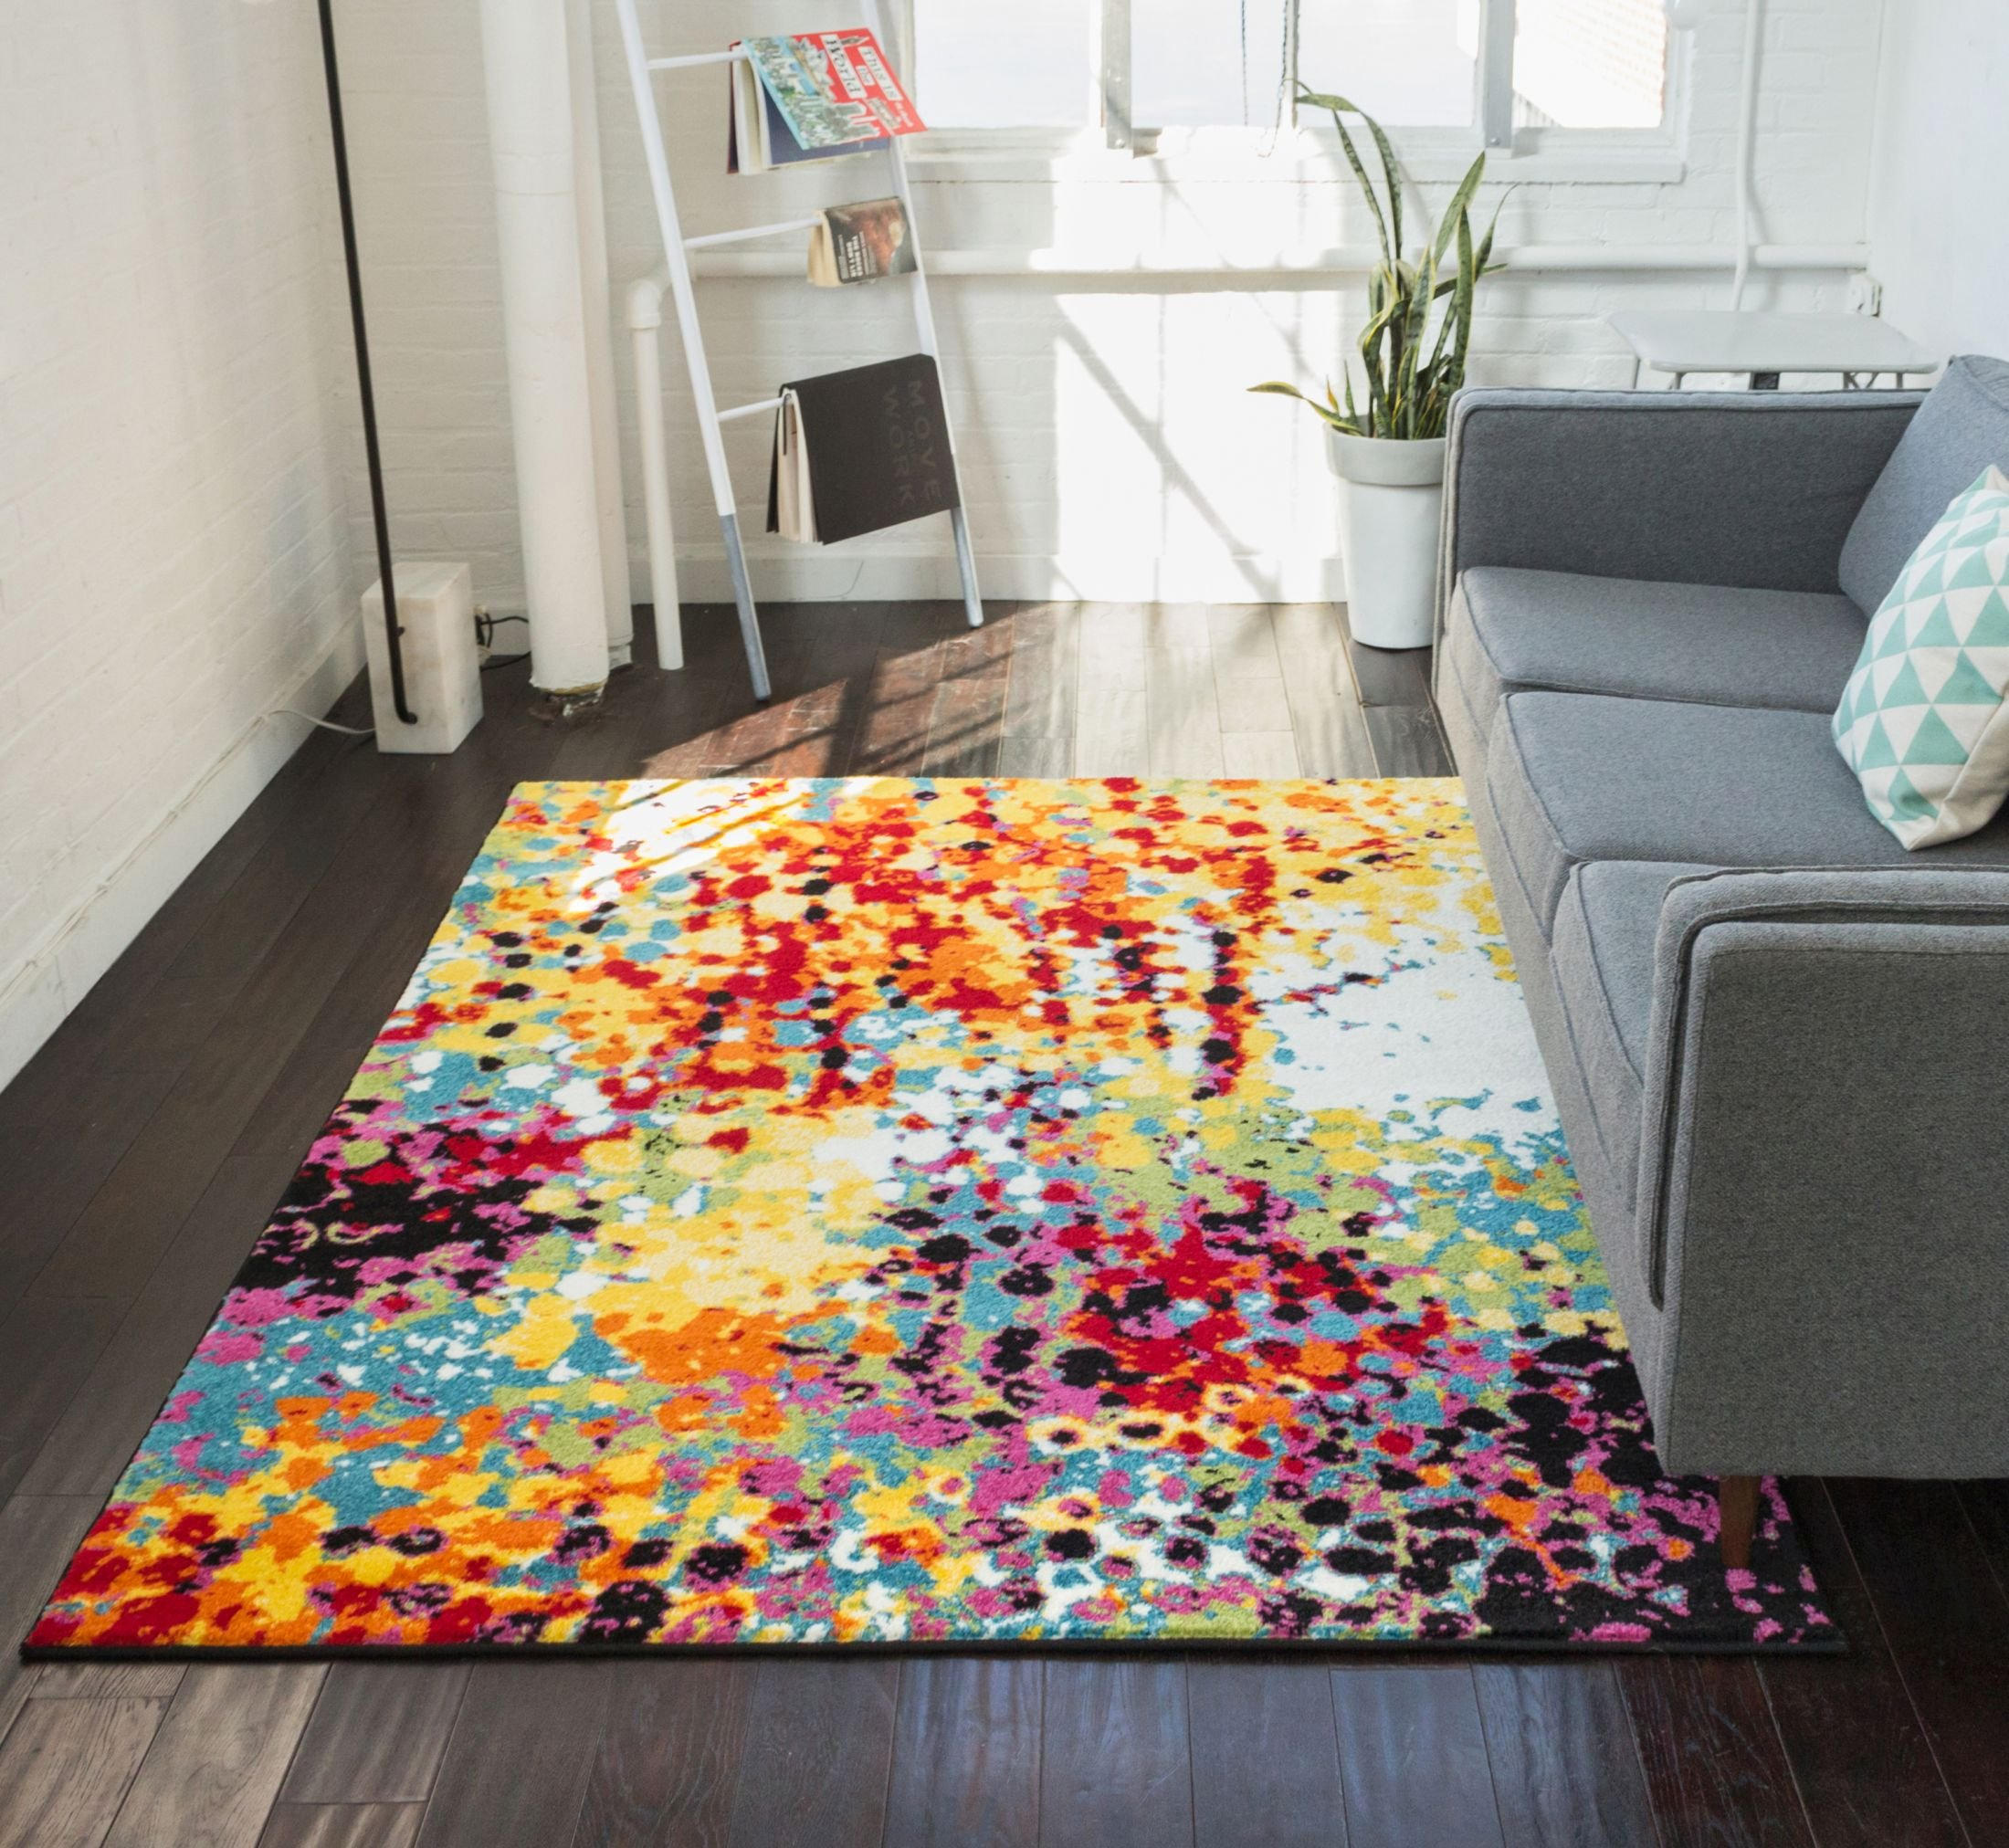 Impasto Multi Geometric Red Yellow Blue Modern Abstract Painting Area Rug 8x10 ( 7'10'' x 9'10'' ) Easy Clean Stain Fade Resistant Shed Free Contemporary Brush Stroke Thick Soft Plush Living Dining Room